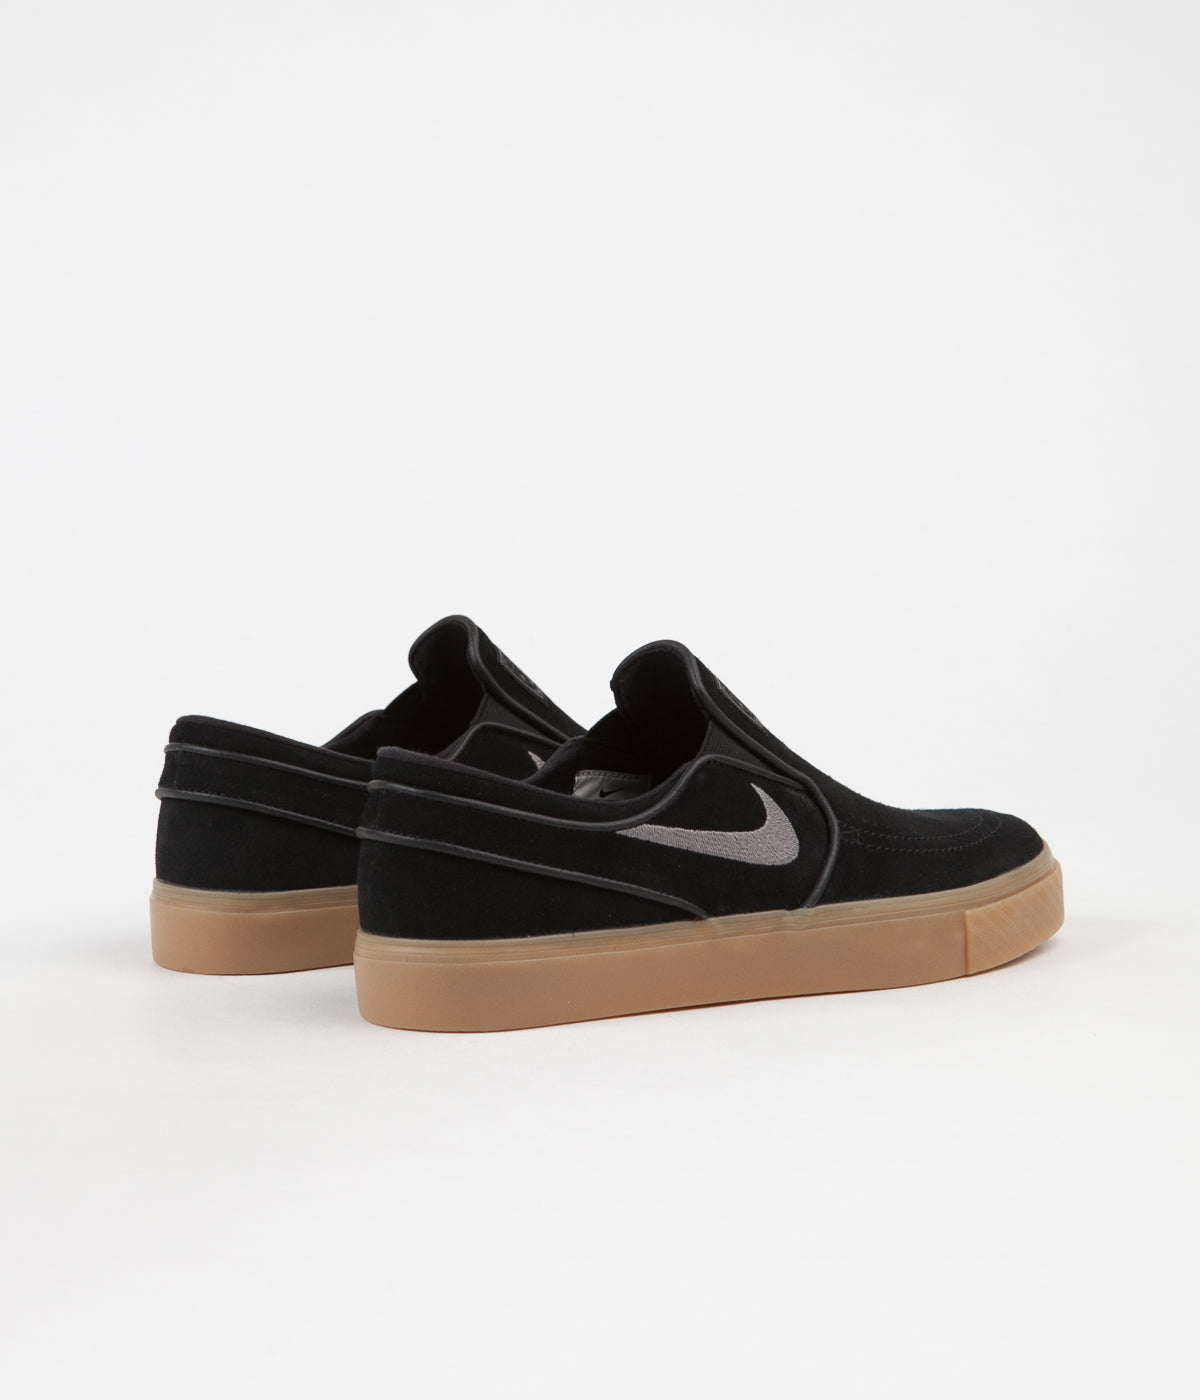 385605739 ... Nike SB Stefan Janoski Slip On Shoes - Black   Gunsmoke - Gum Light  Brown ...